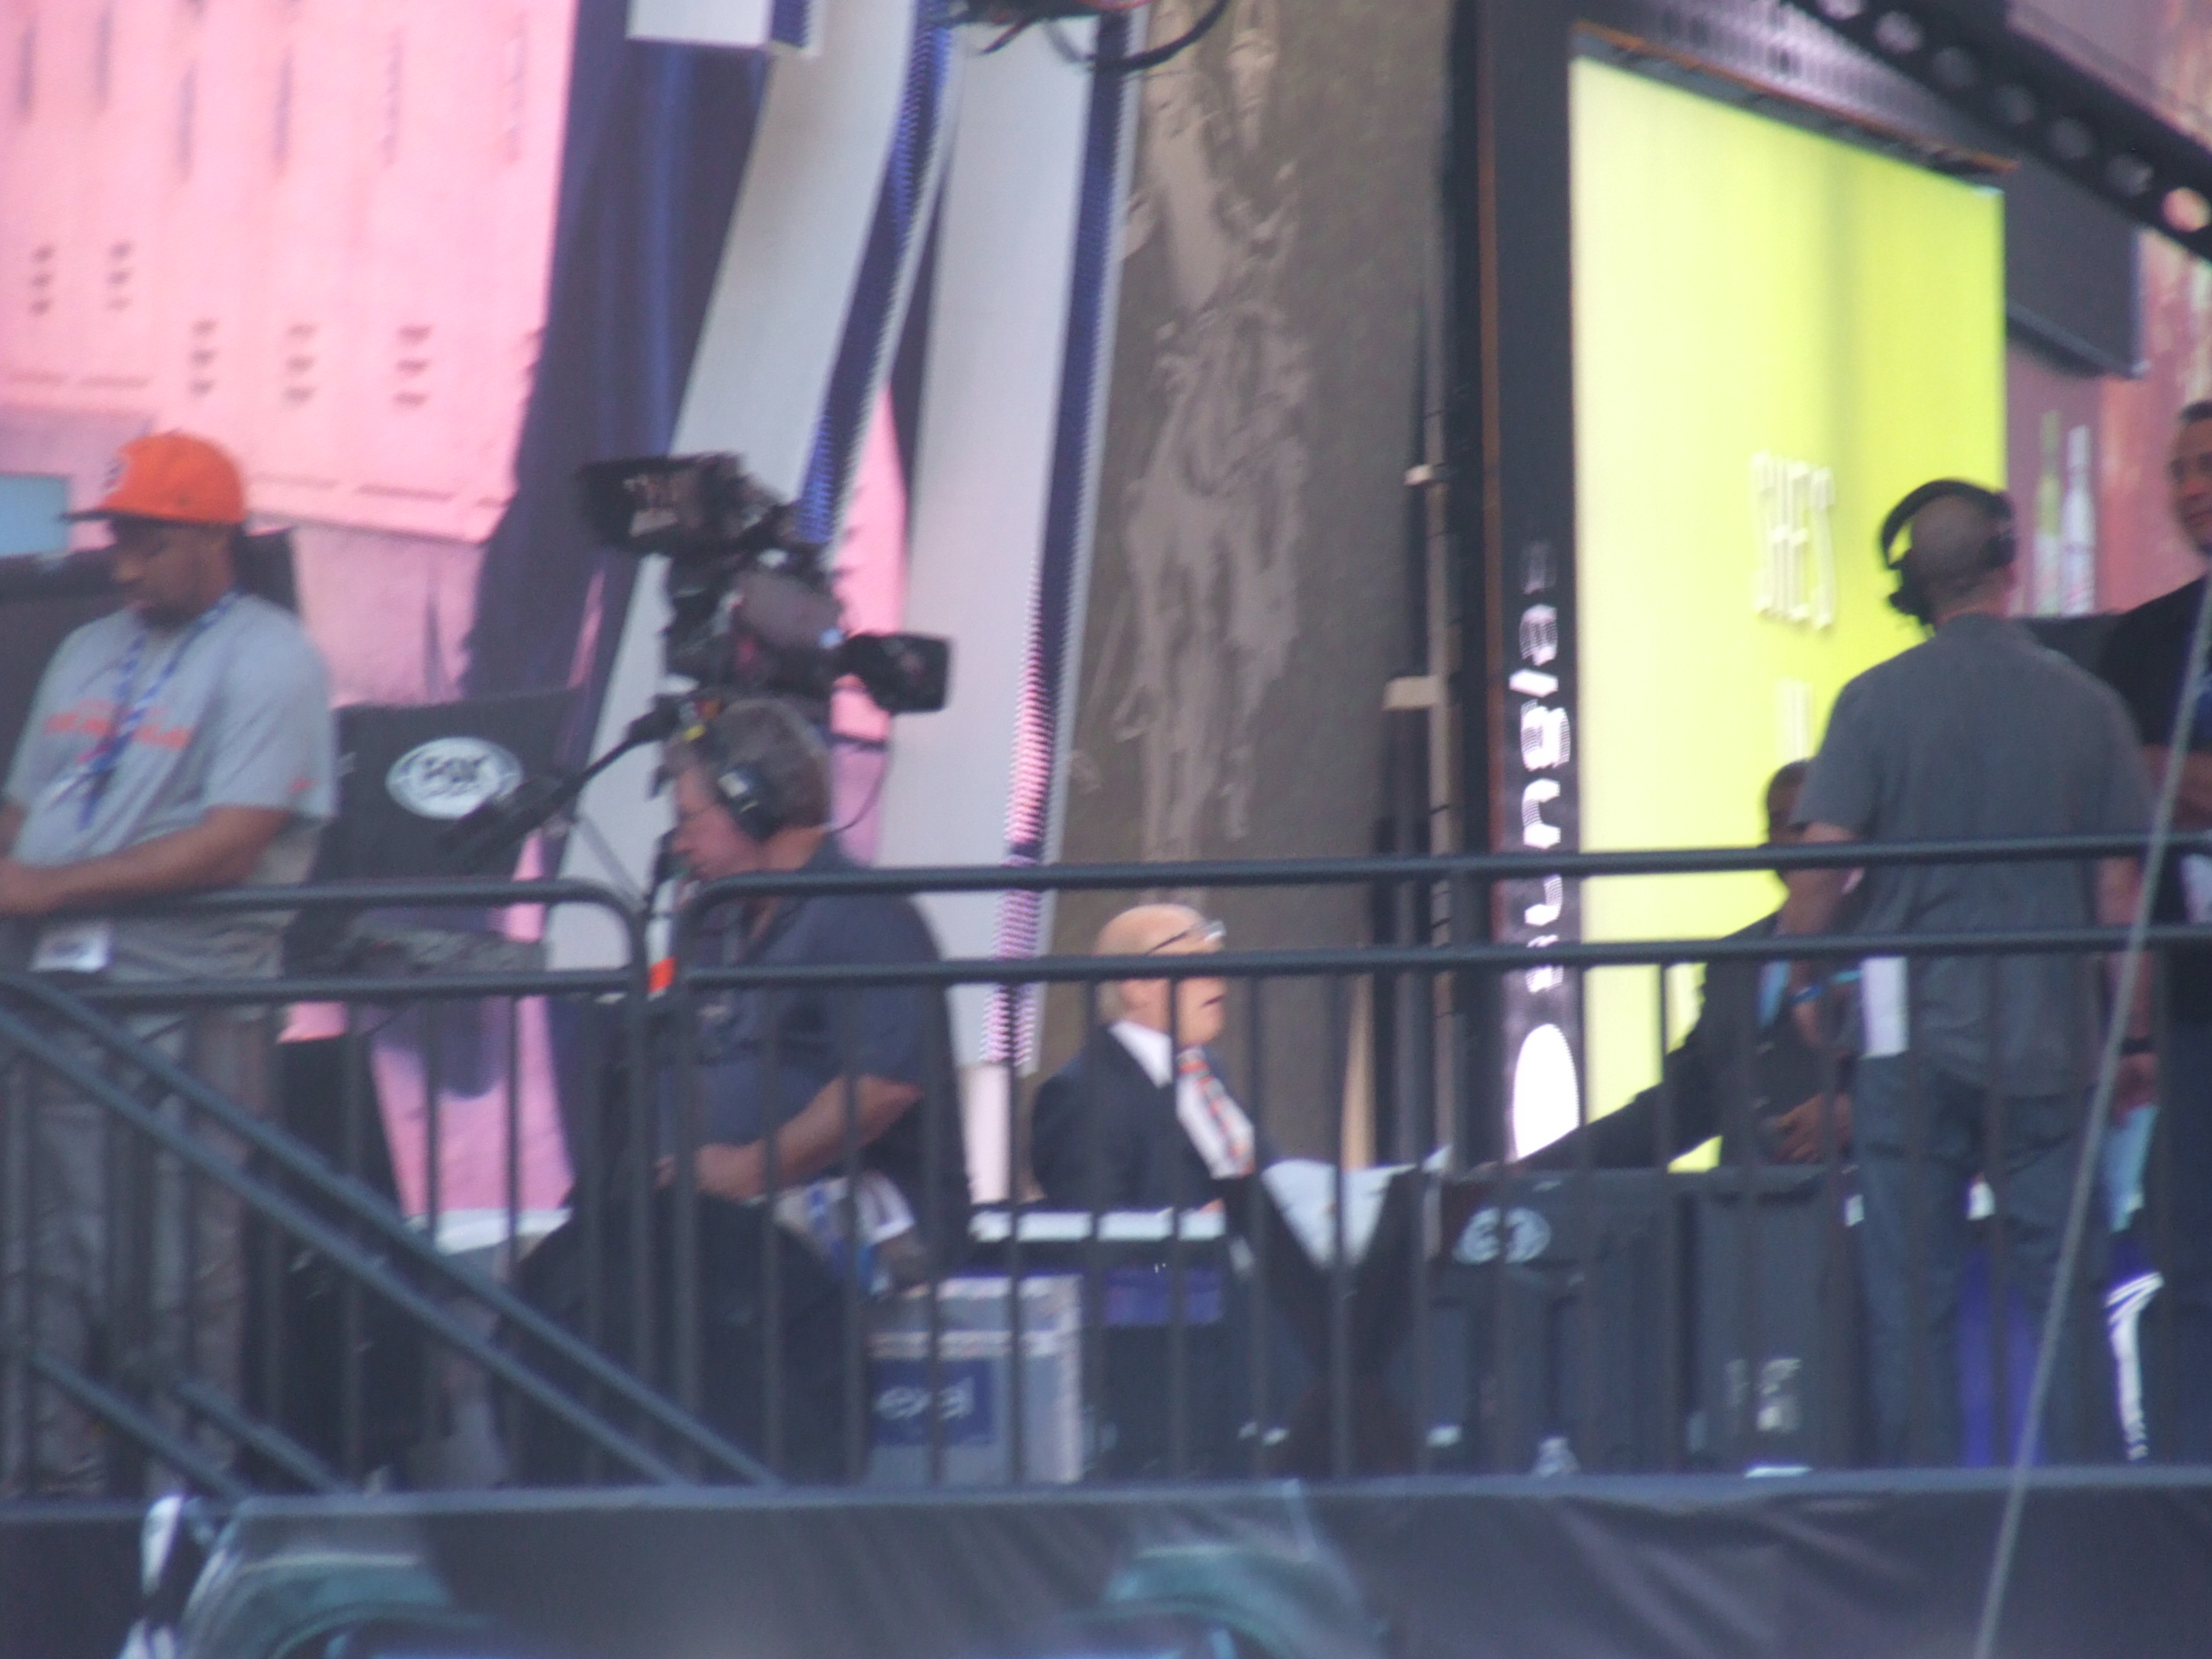 Nikko Nyc Pics Michael Strahan And Nfl Sports Invades Times Square